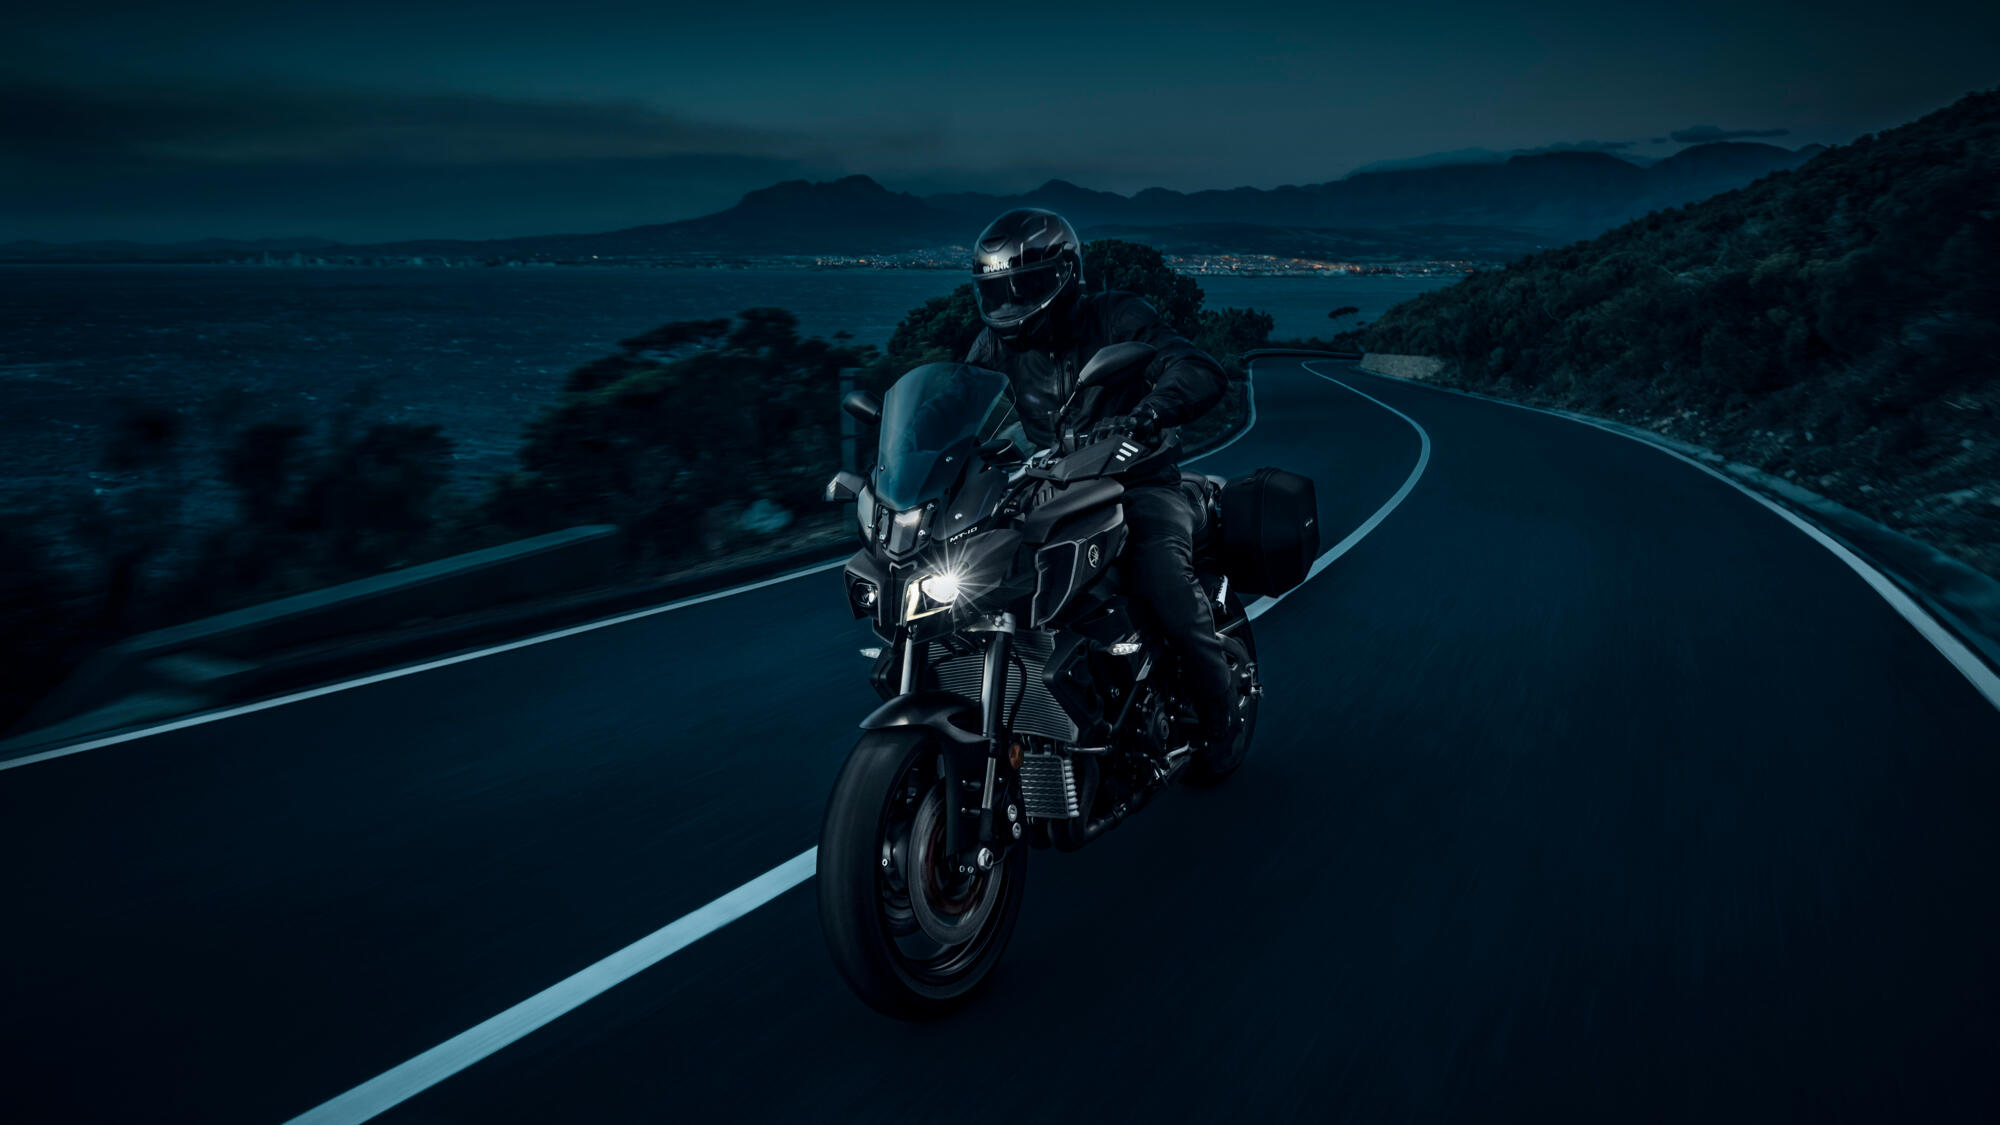 MT-10 Tourer Edition - motorcycles - Yamaha Motor